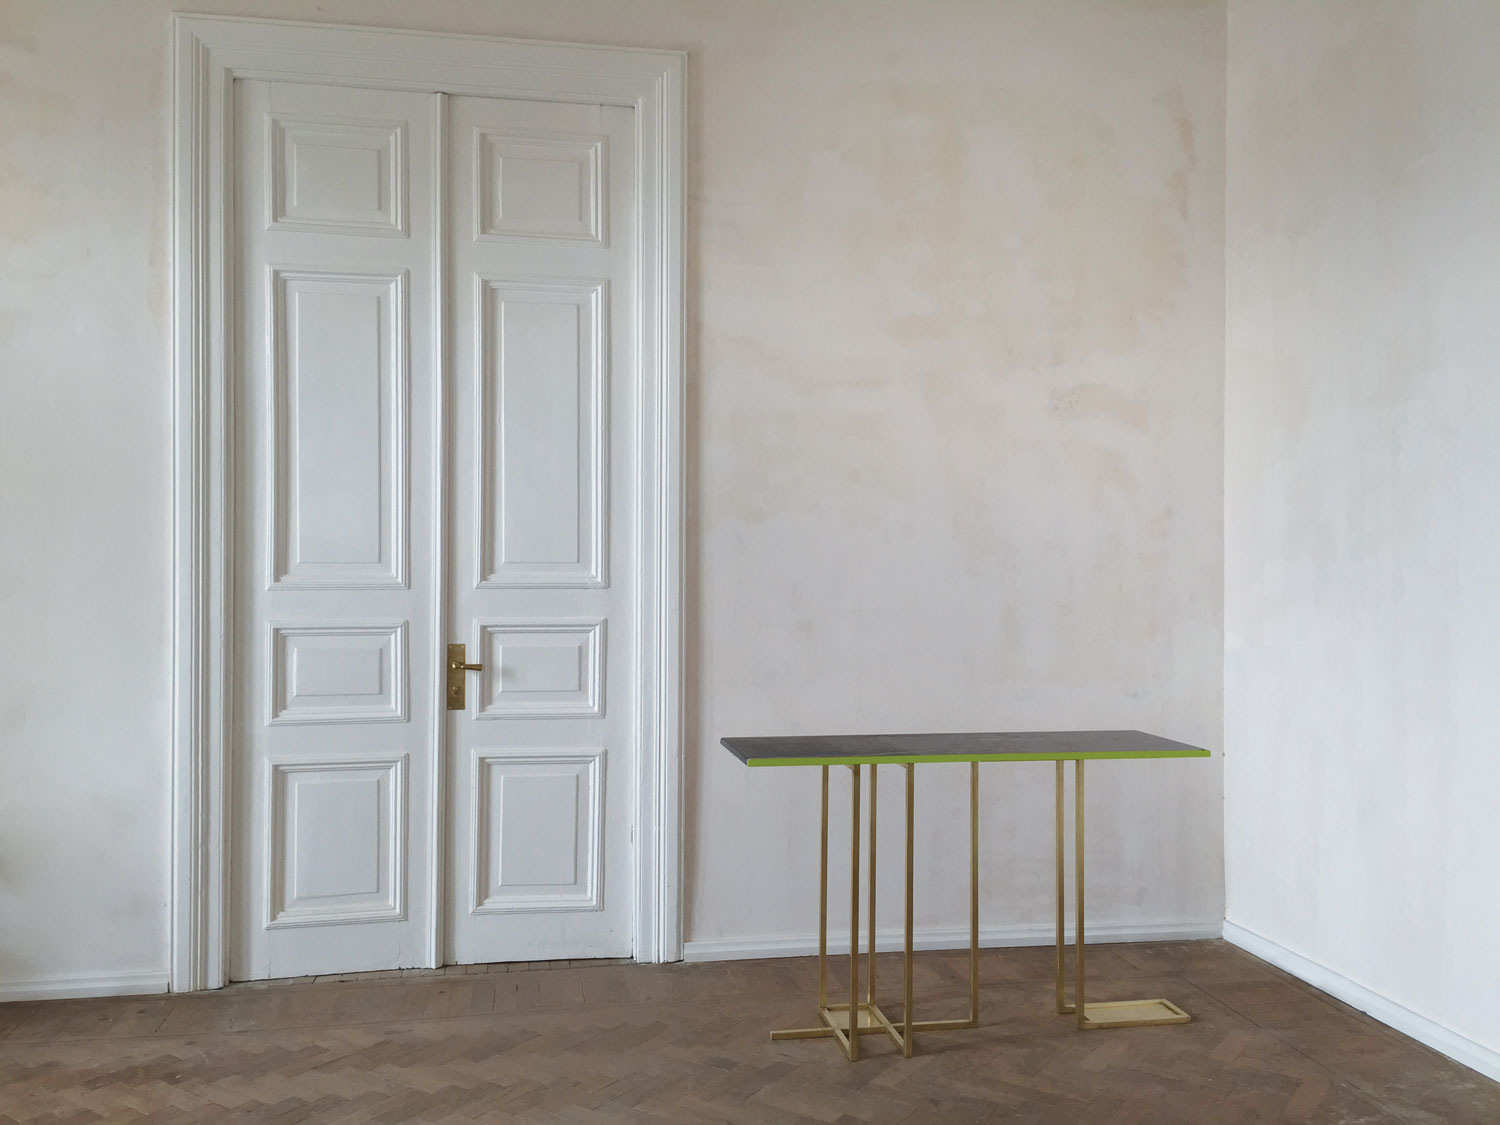 Rooms Design Invisible to the Eye Collection, Milan Design Week 2015 | Yellowtrace